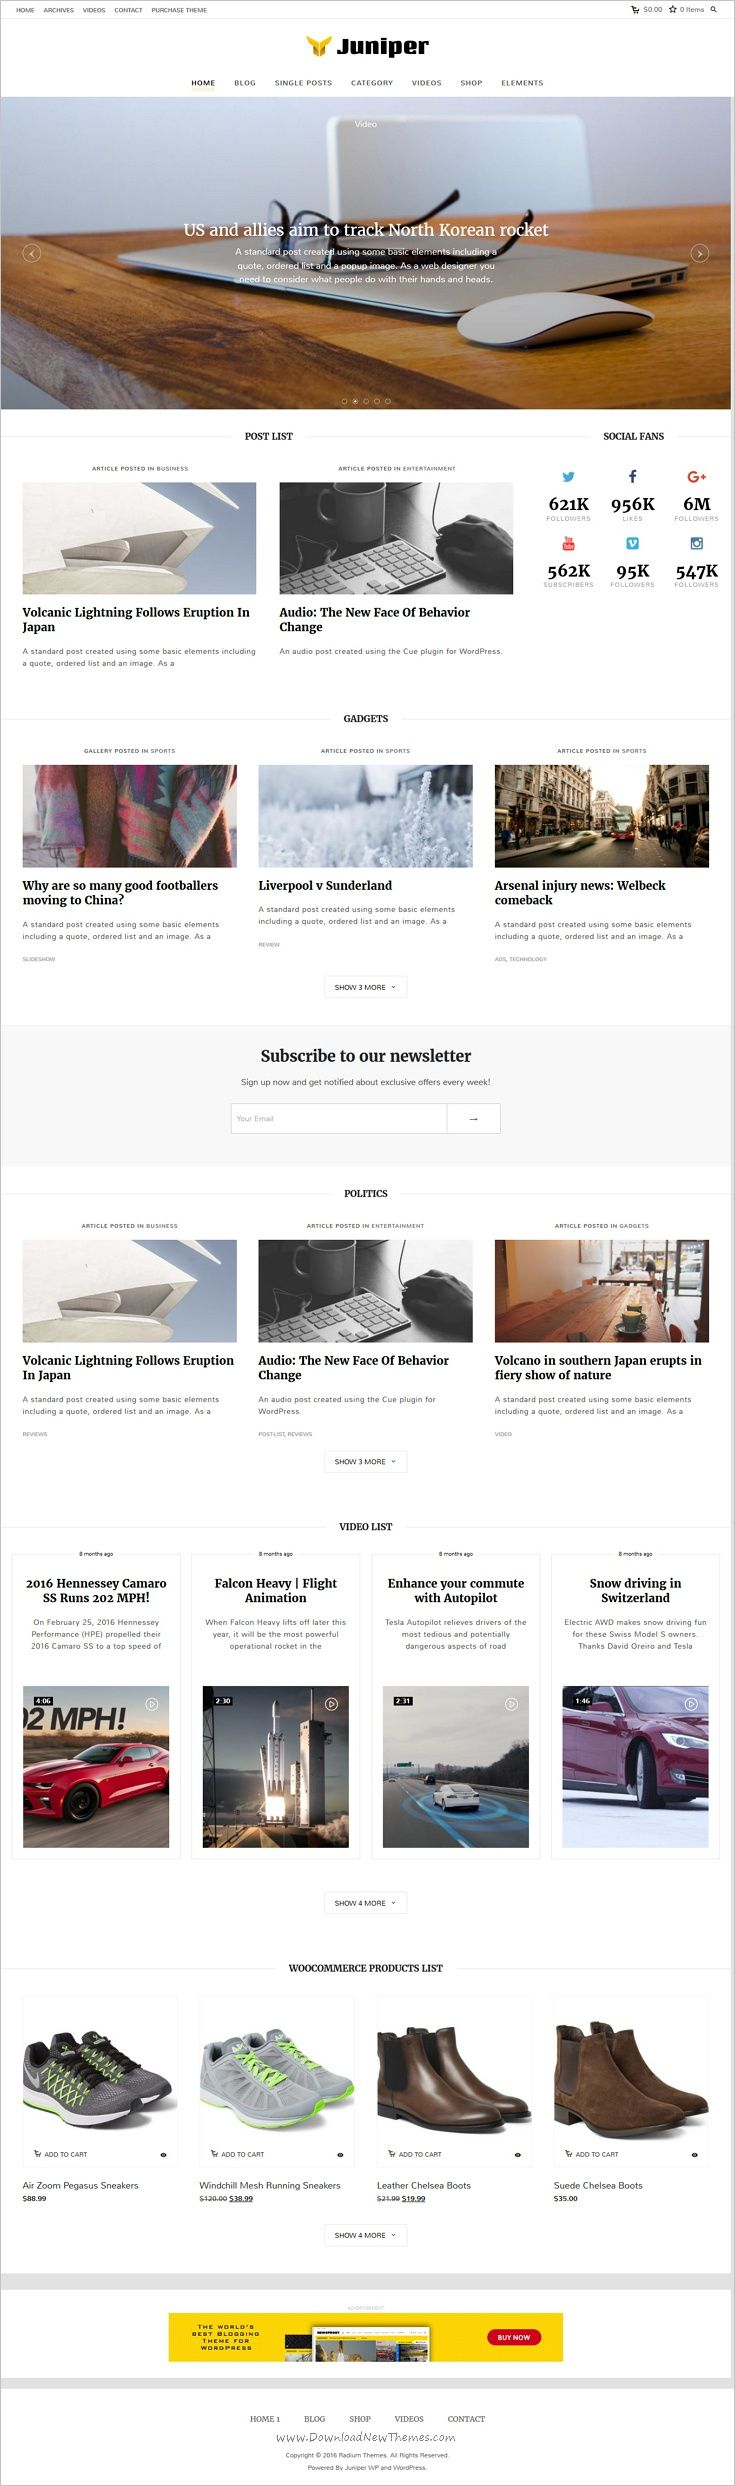 Juniper is a light #minimalistic, a feature packed 8 in 1 #WordPress theme, perfect for personal modern #blogs, lifestyle magazine & content production websites download now➩ https://themeforest.net/item/juniper-personal-wordpress-blog-theme/17961787?ref=Datasata